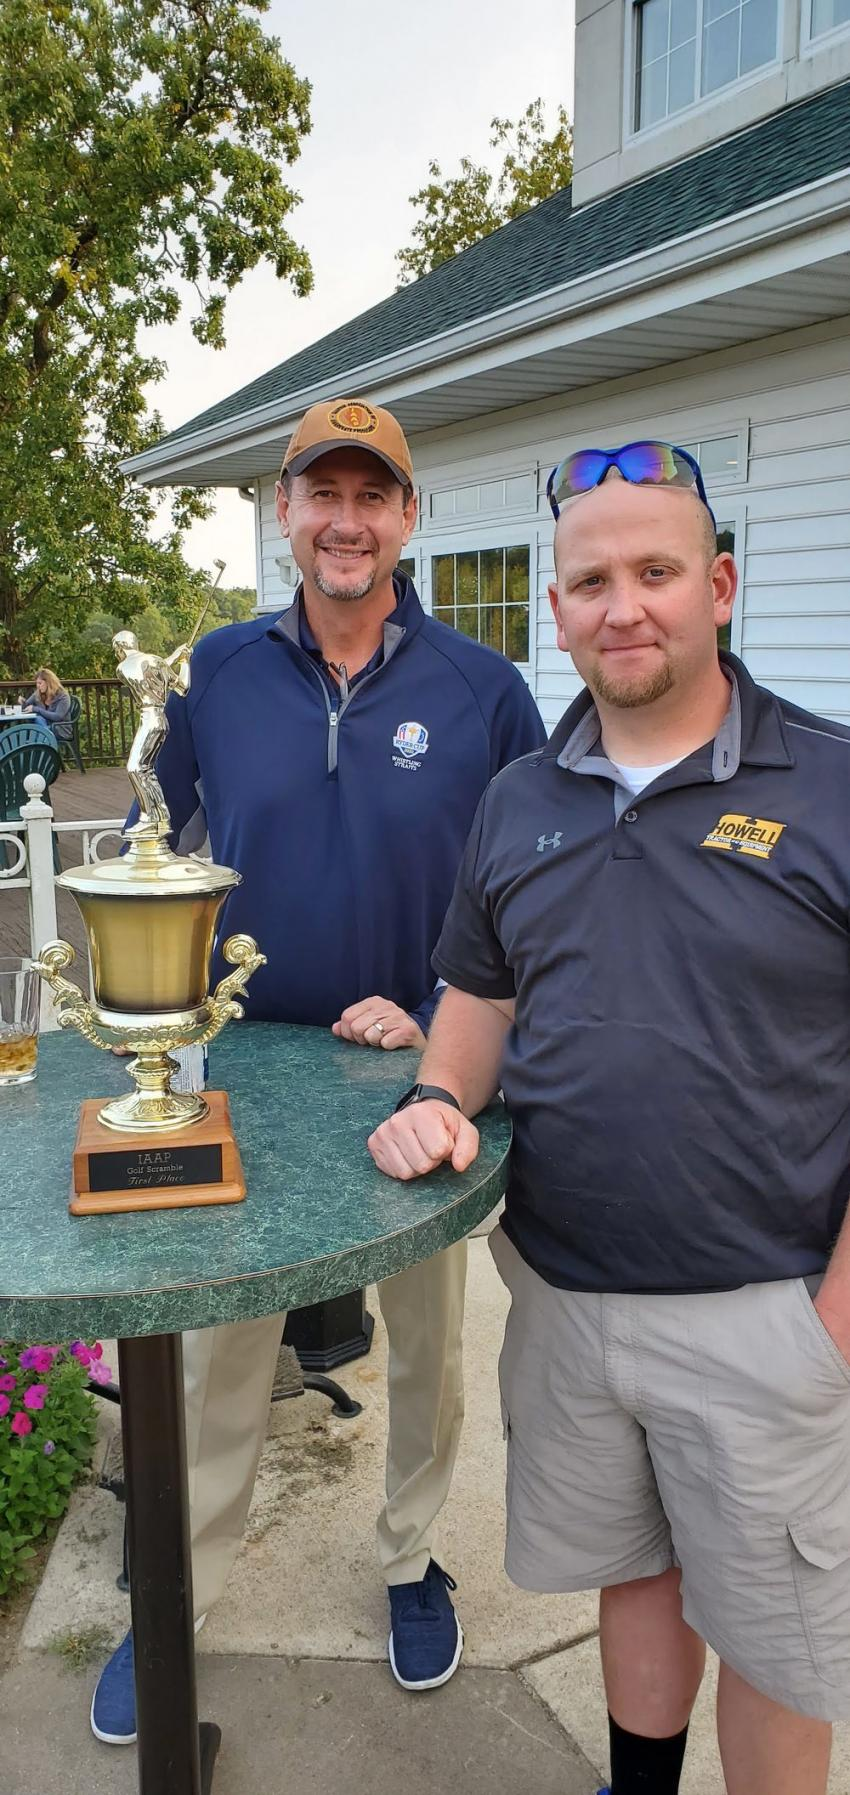 IAAP's Dan Eichholz (L) presents the first-place trophy to the Howell Tractor team's Aaron King.